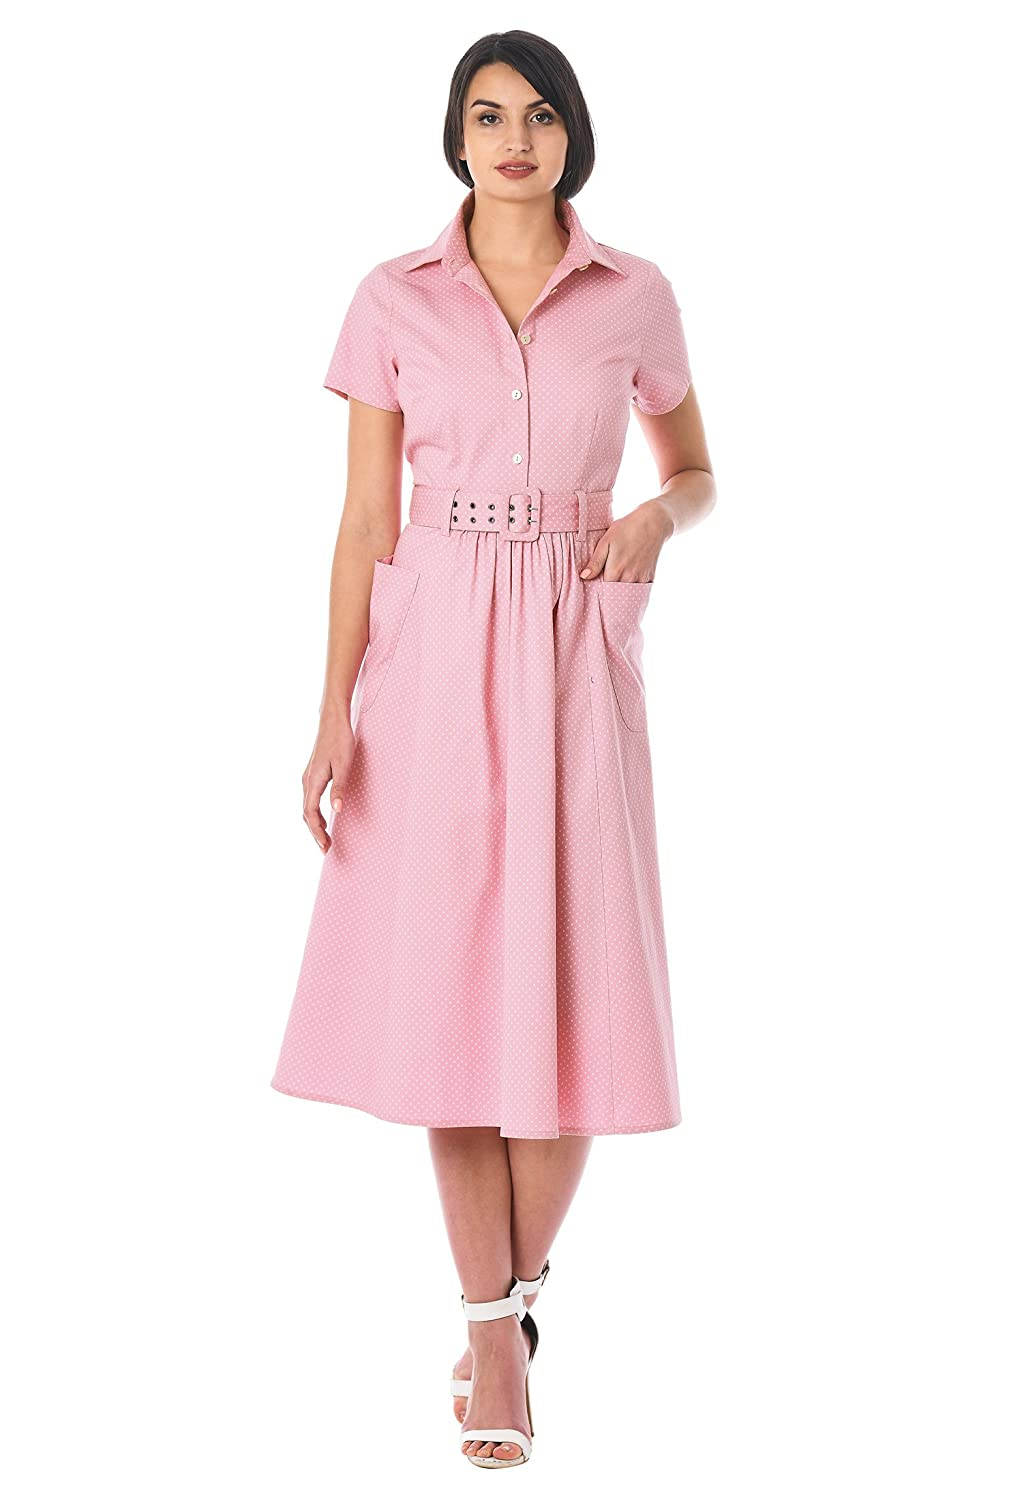 What Did Women Wear in the 1950s? eShakti Womens Polka Dot Cotton Twill Belted shirtdress $54.95 AT vintagedancer.com